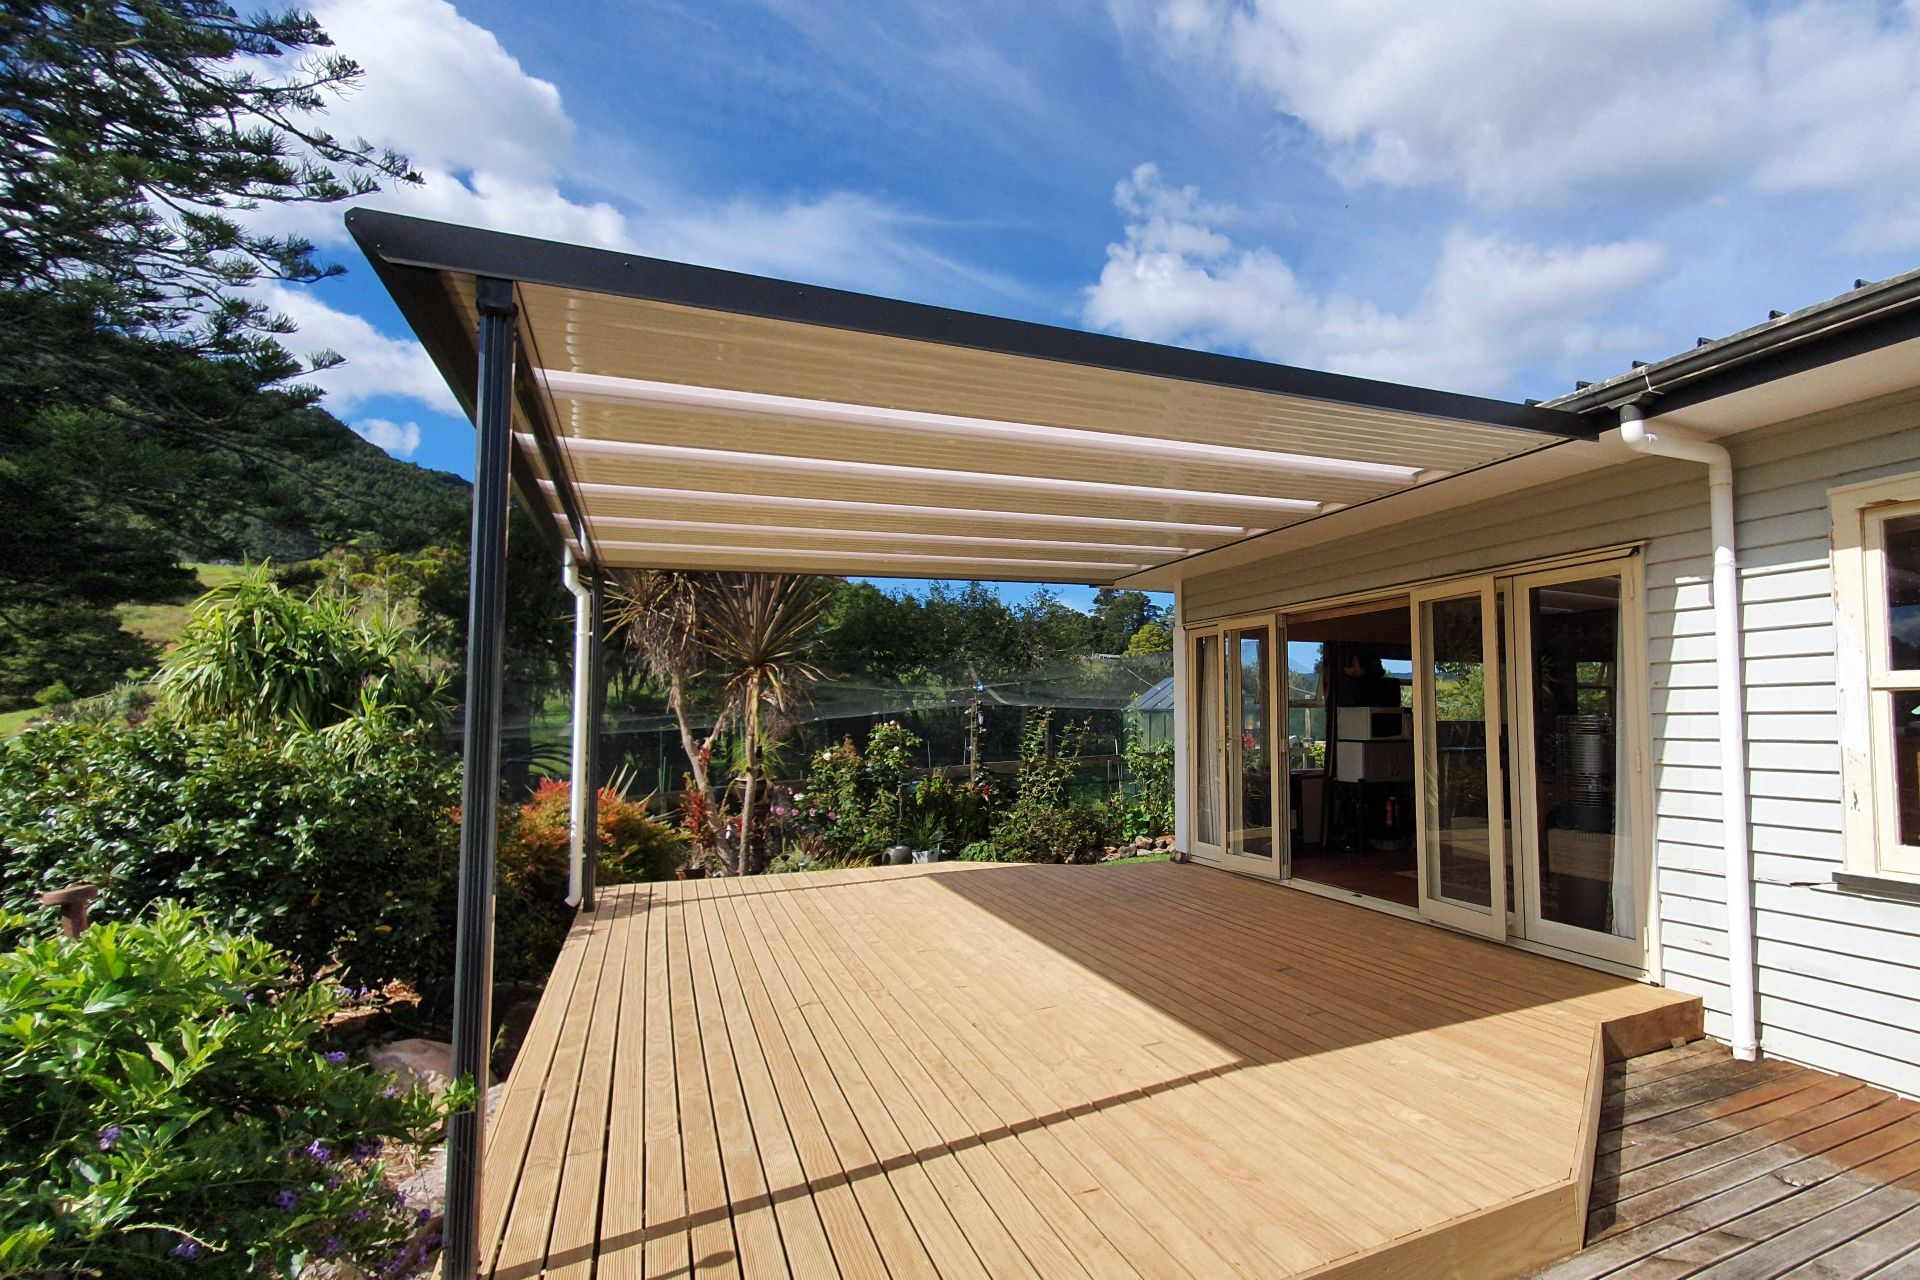 An outdoor deck is covered with a flat roof to enable use all year round